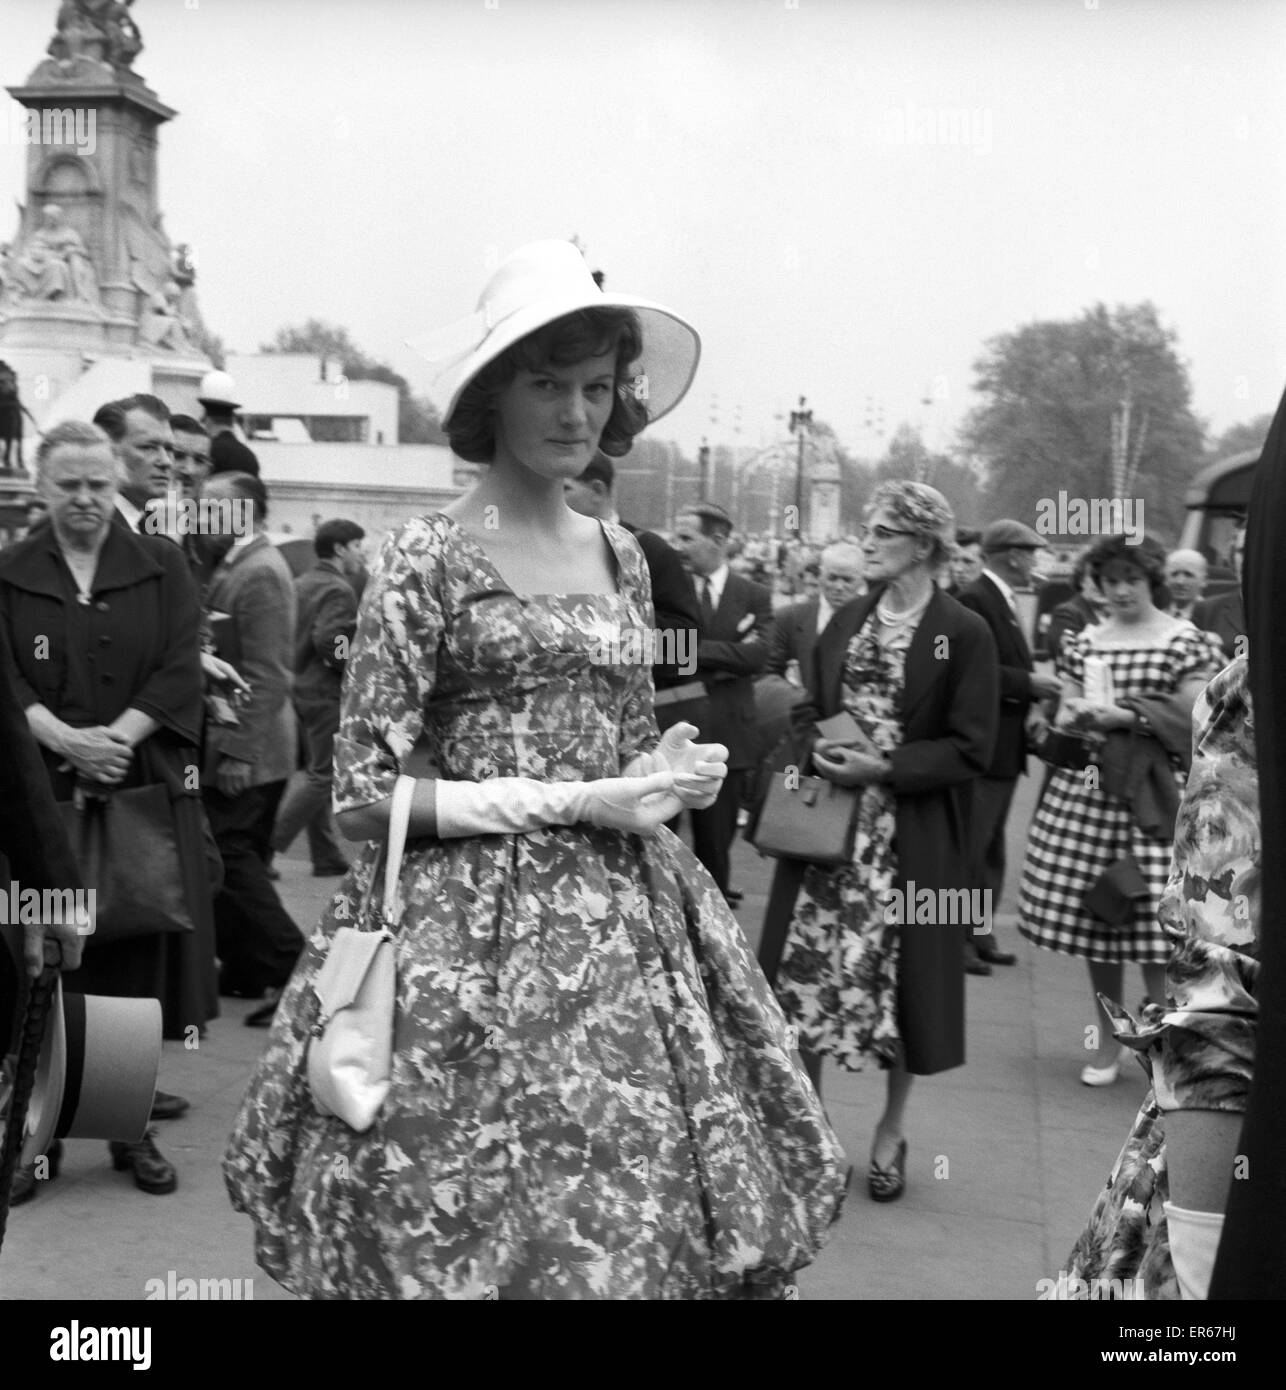 Buckingham Palace Garden Party: Visitors and passers by outside Buckingham Palace had a freed hat fashion show today. - Stock Image